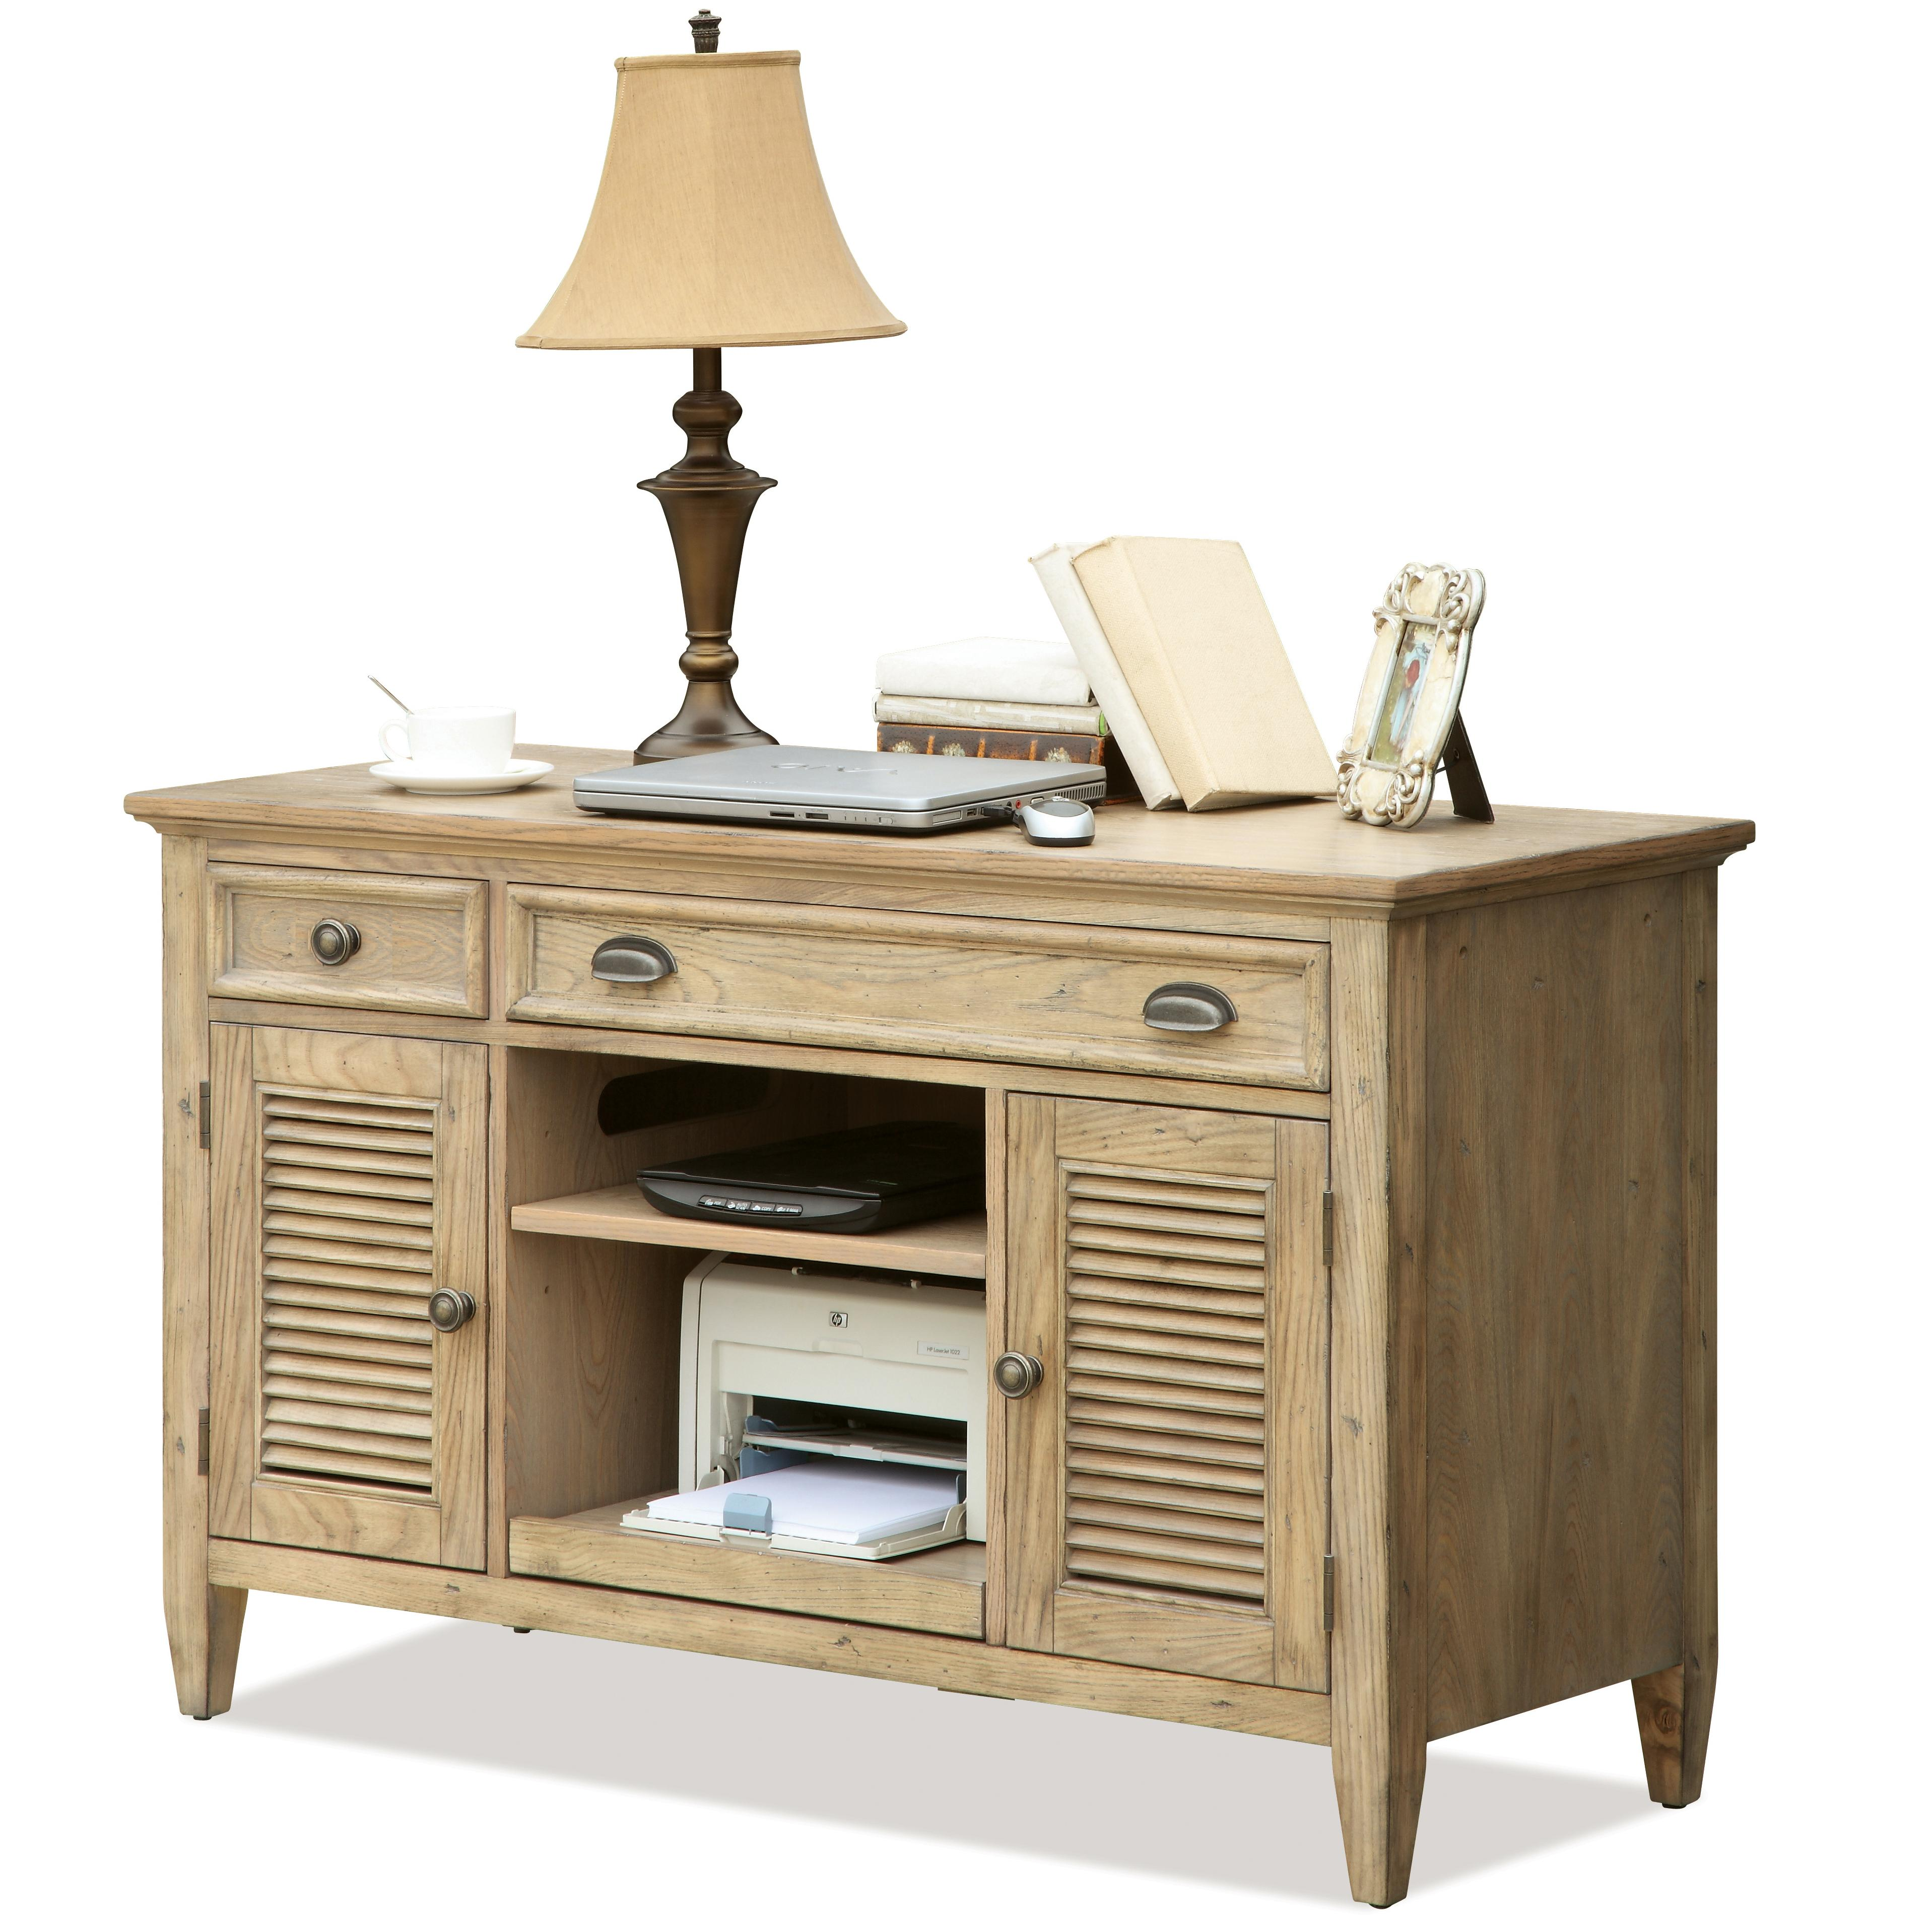 Riverside Furniture Coventry Credenza Desk - Item Number: 32423